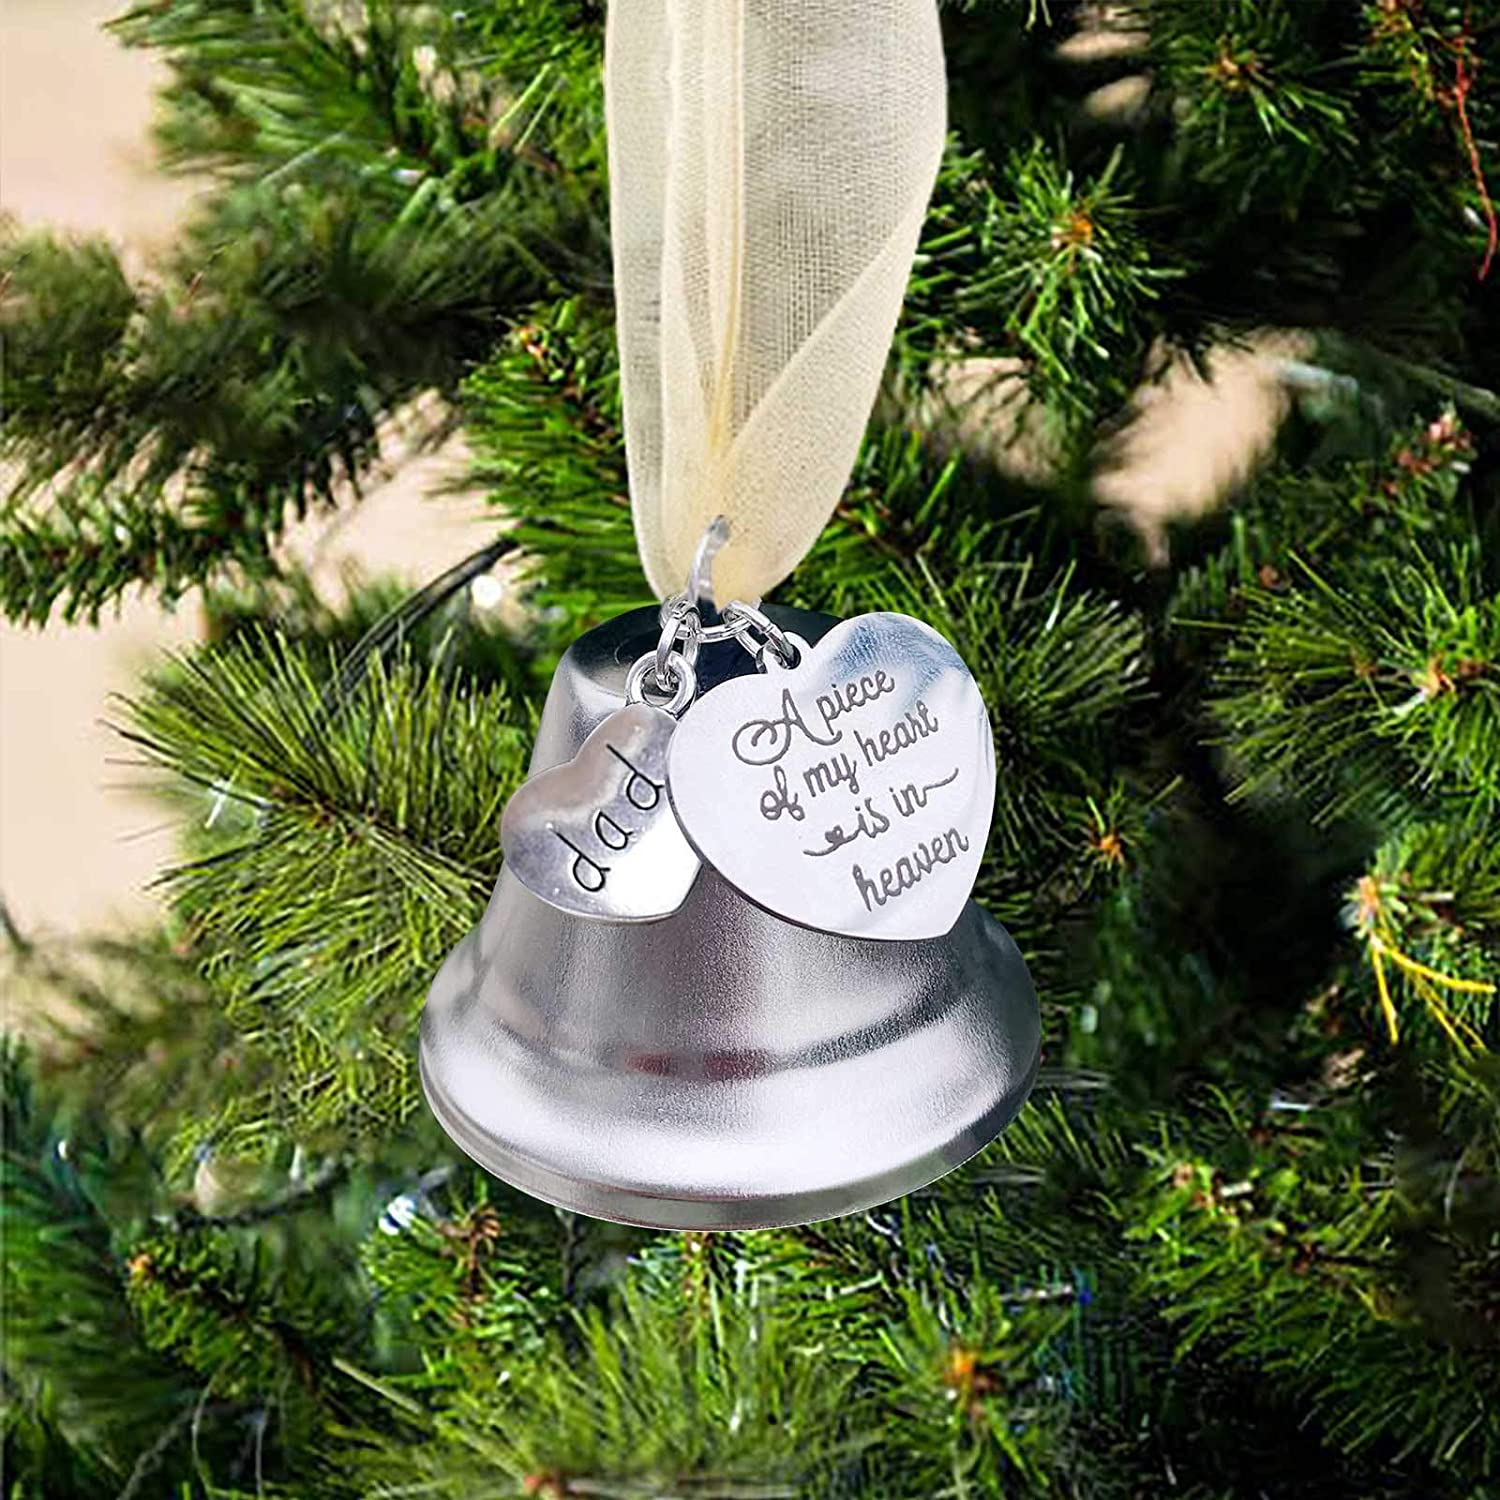 OLOPE Custom Angel Wing Silver Bell,Angel Wing Memorial Ornament Hanging Ornament Pendants for Memorial Remembrance Lost Loved Ones Ornament Keepsake Gift Home Decor Gifts (Father)